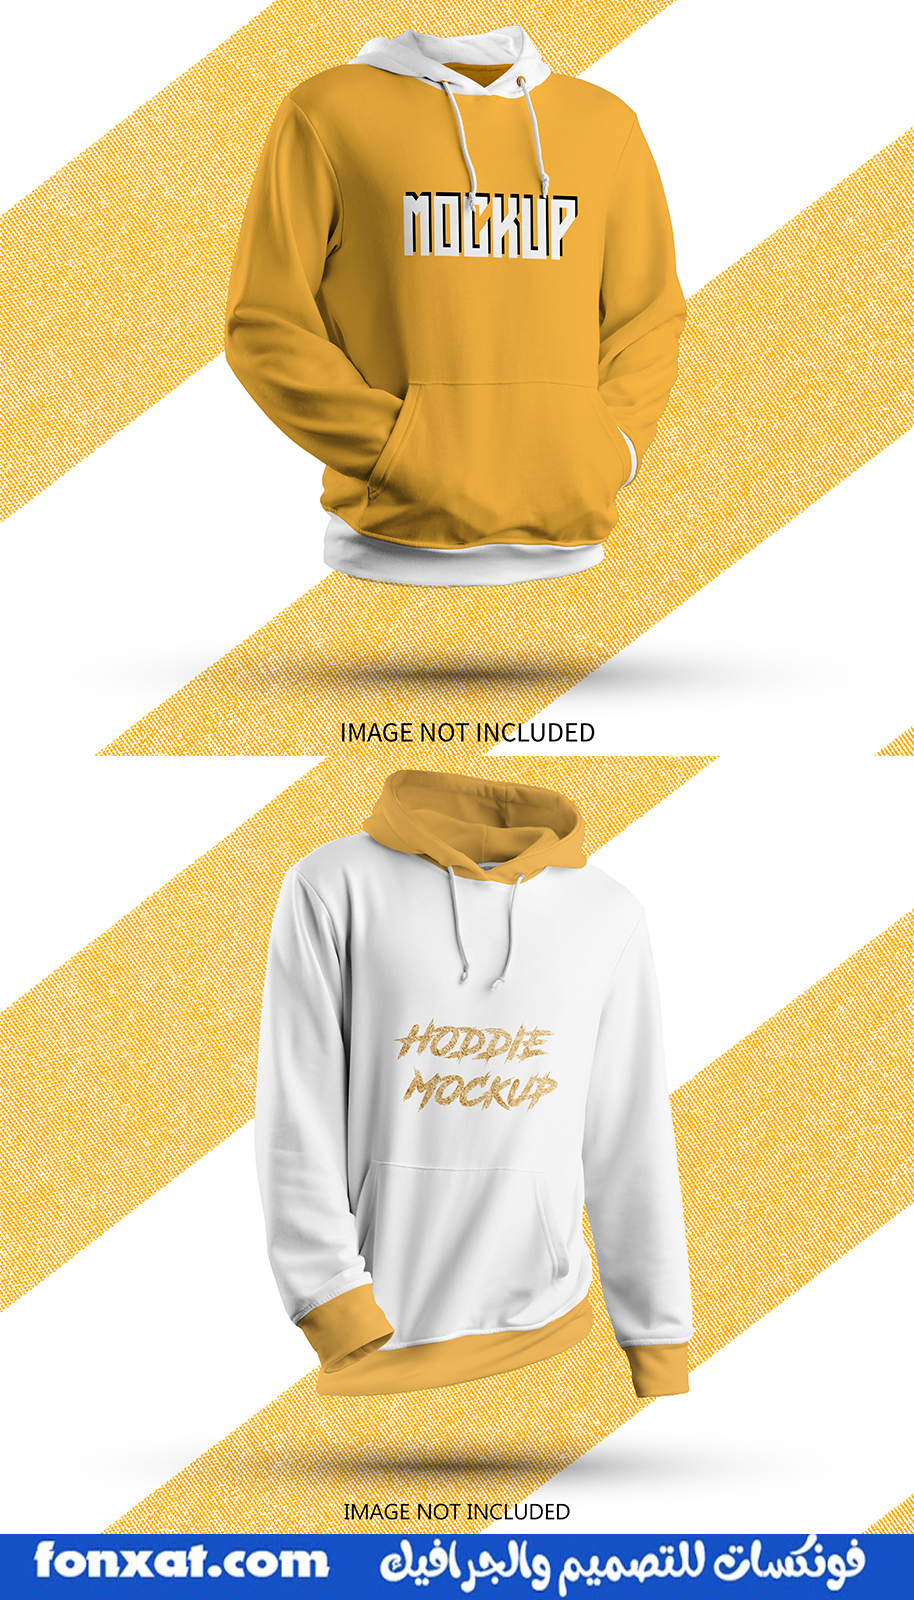 Download 2 mockups of white T-shirt for winter clothes, file 2